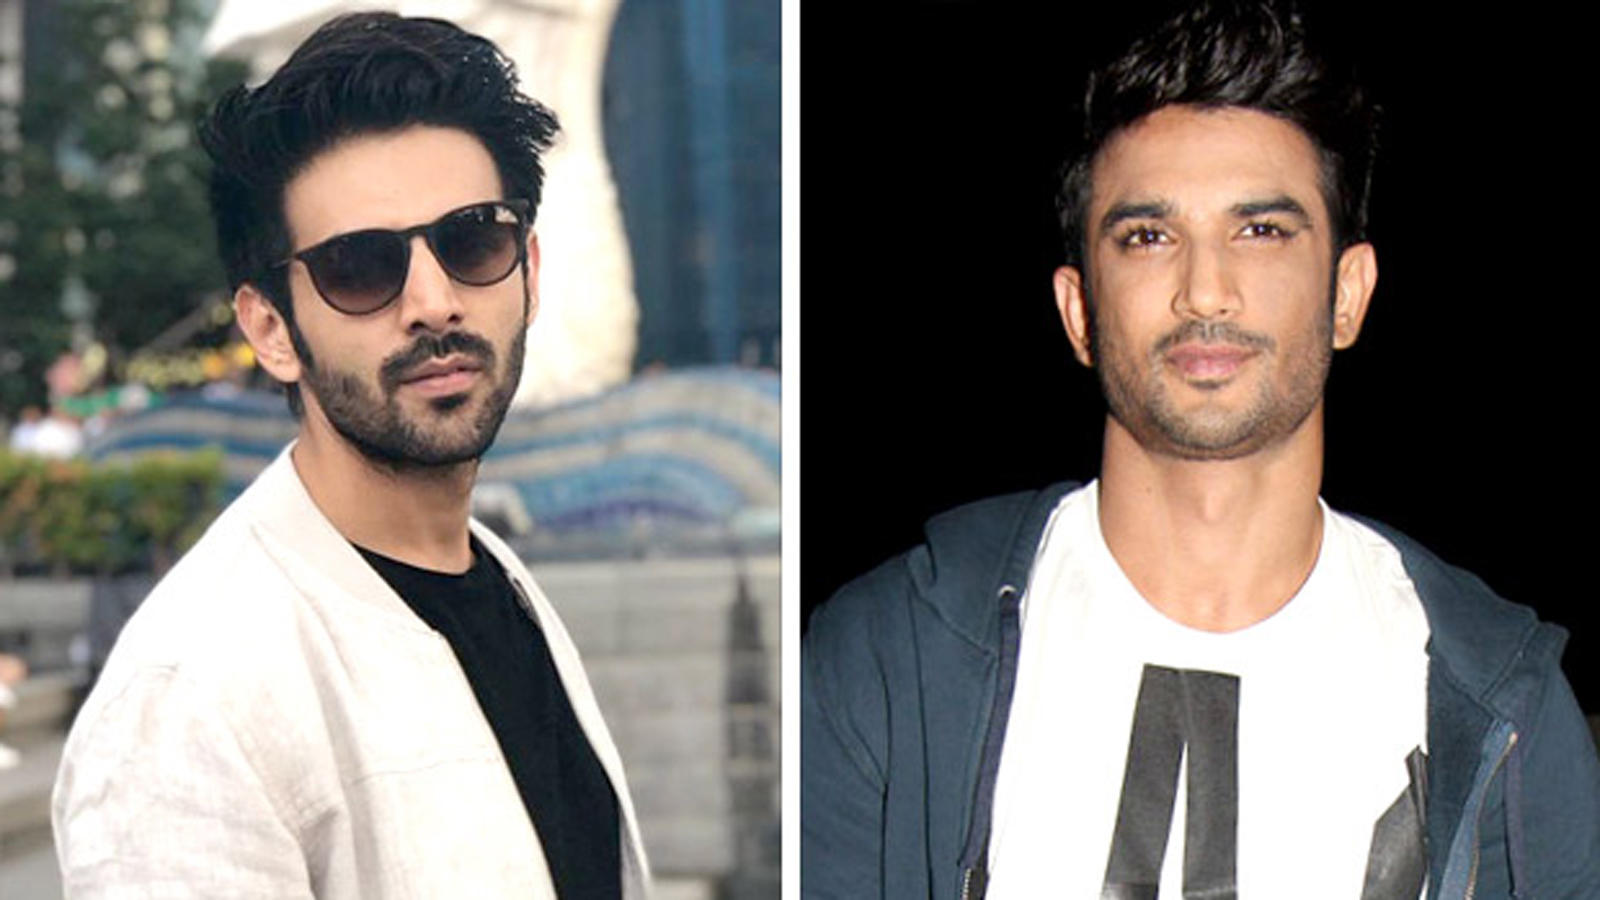 netizens-say-kartik-aaryan-wont-be-another-sushant-singh-rajput-allege-nepotism-against-dharma-productions